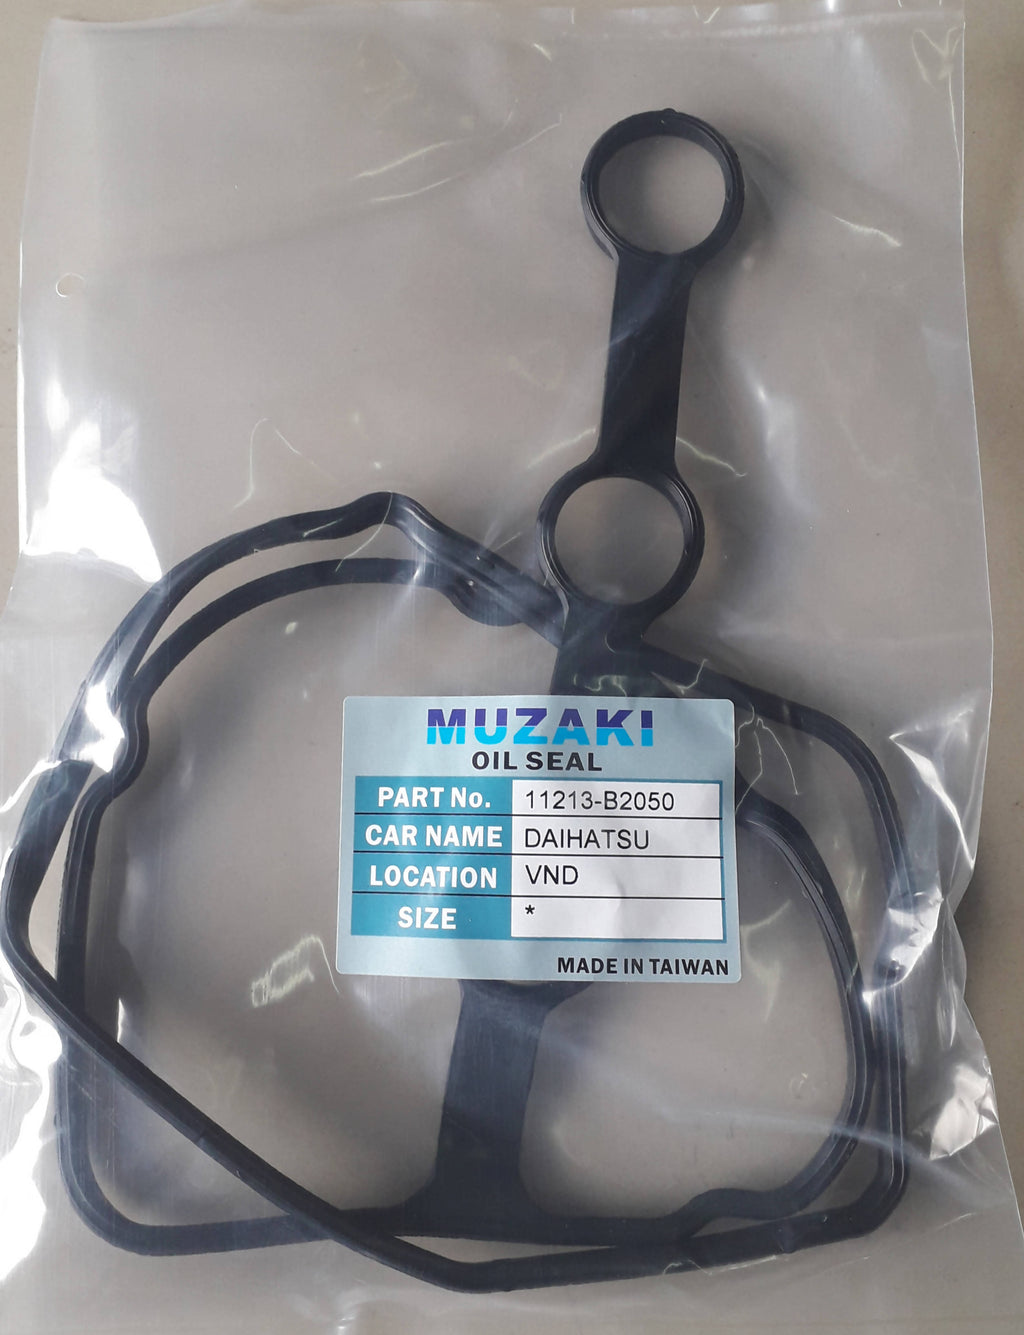 CYLINDER HEAD COVER,OIL SEAL, MUZAKI, 11213-B2050, DAIHATSU, VND, KF,(035955)